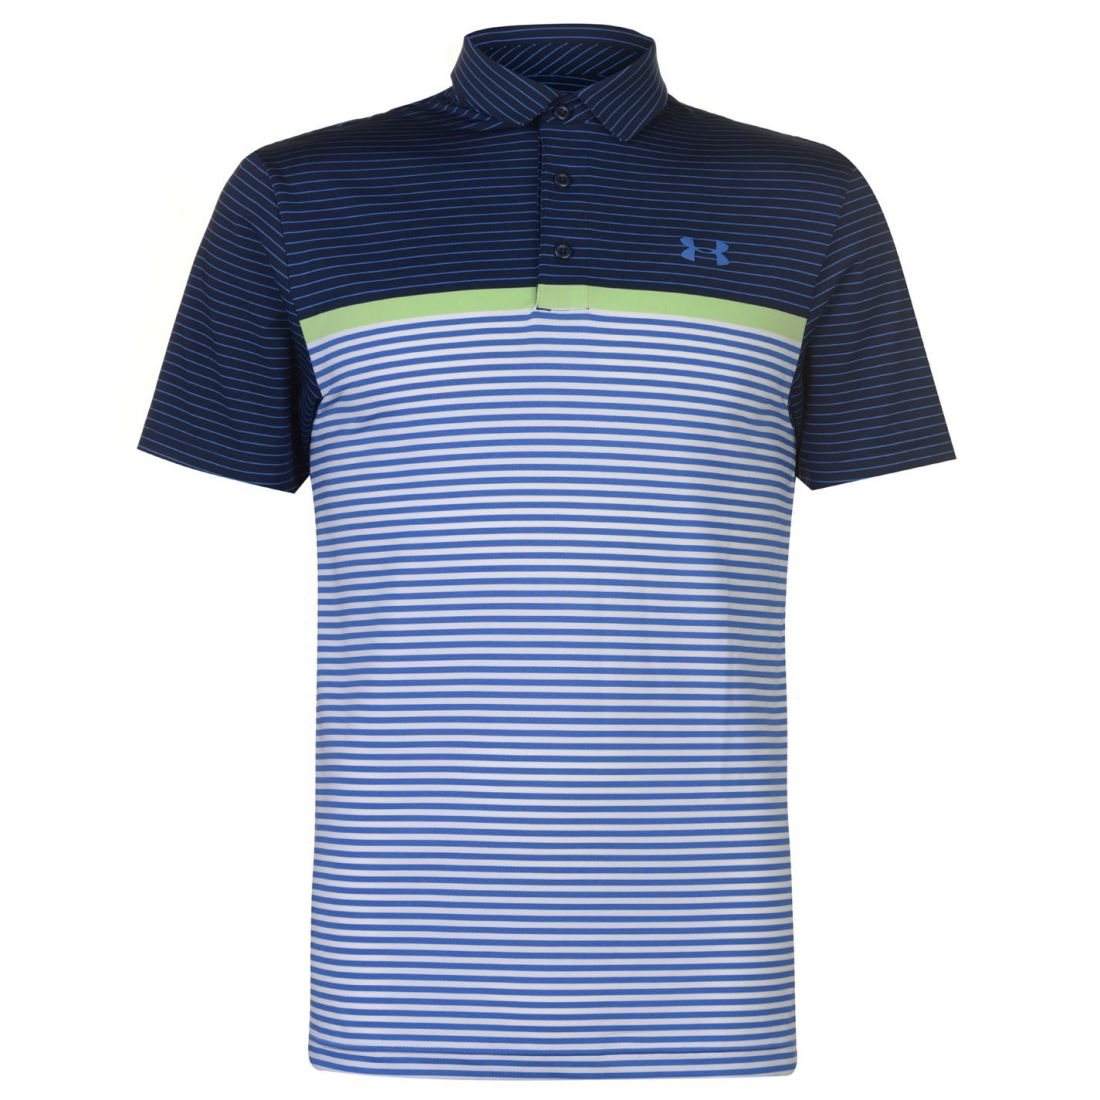 Under Armour Play Off Polo homme homme à manches courtes performances Shirt Tee Top